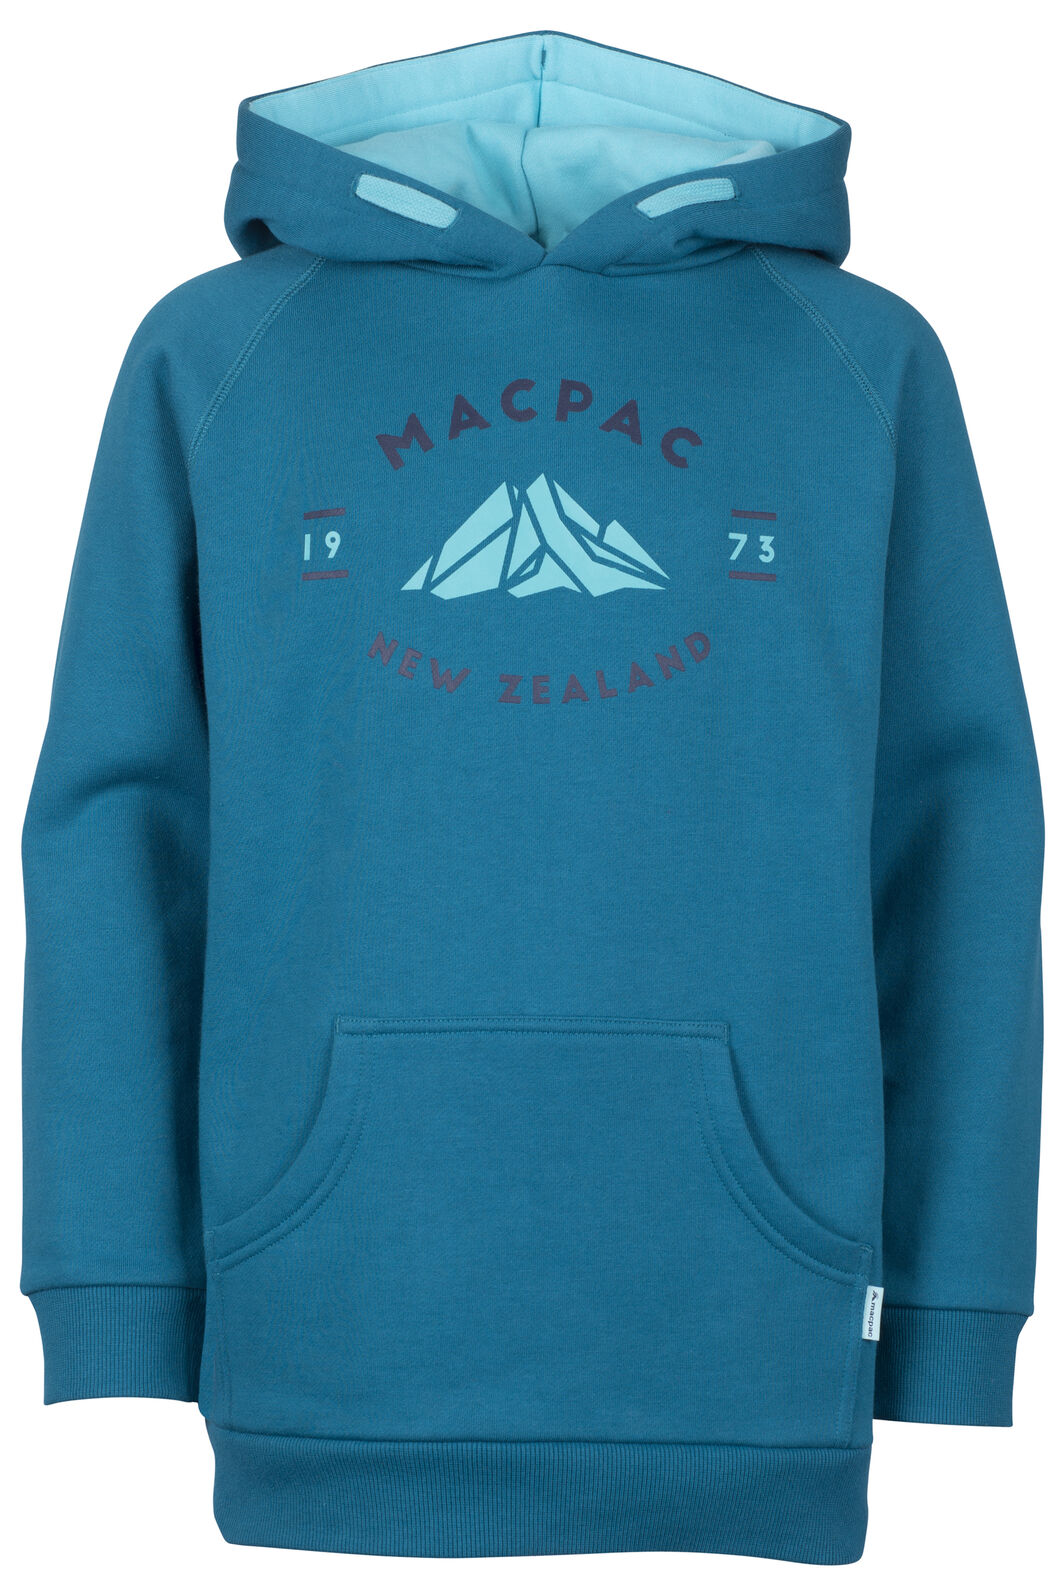 Macpac Organic Mountain Hoody - Kids', Ocean Depths, hi-res